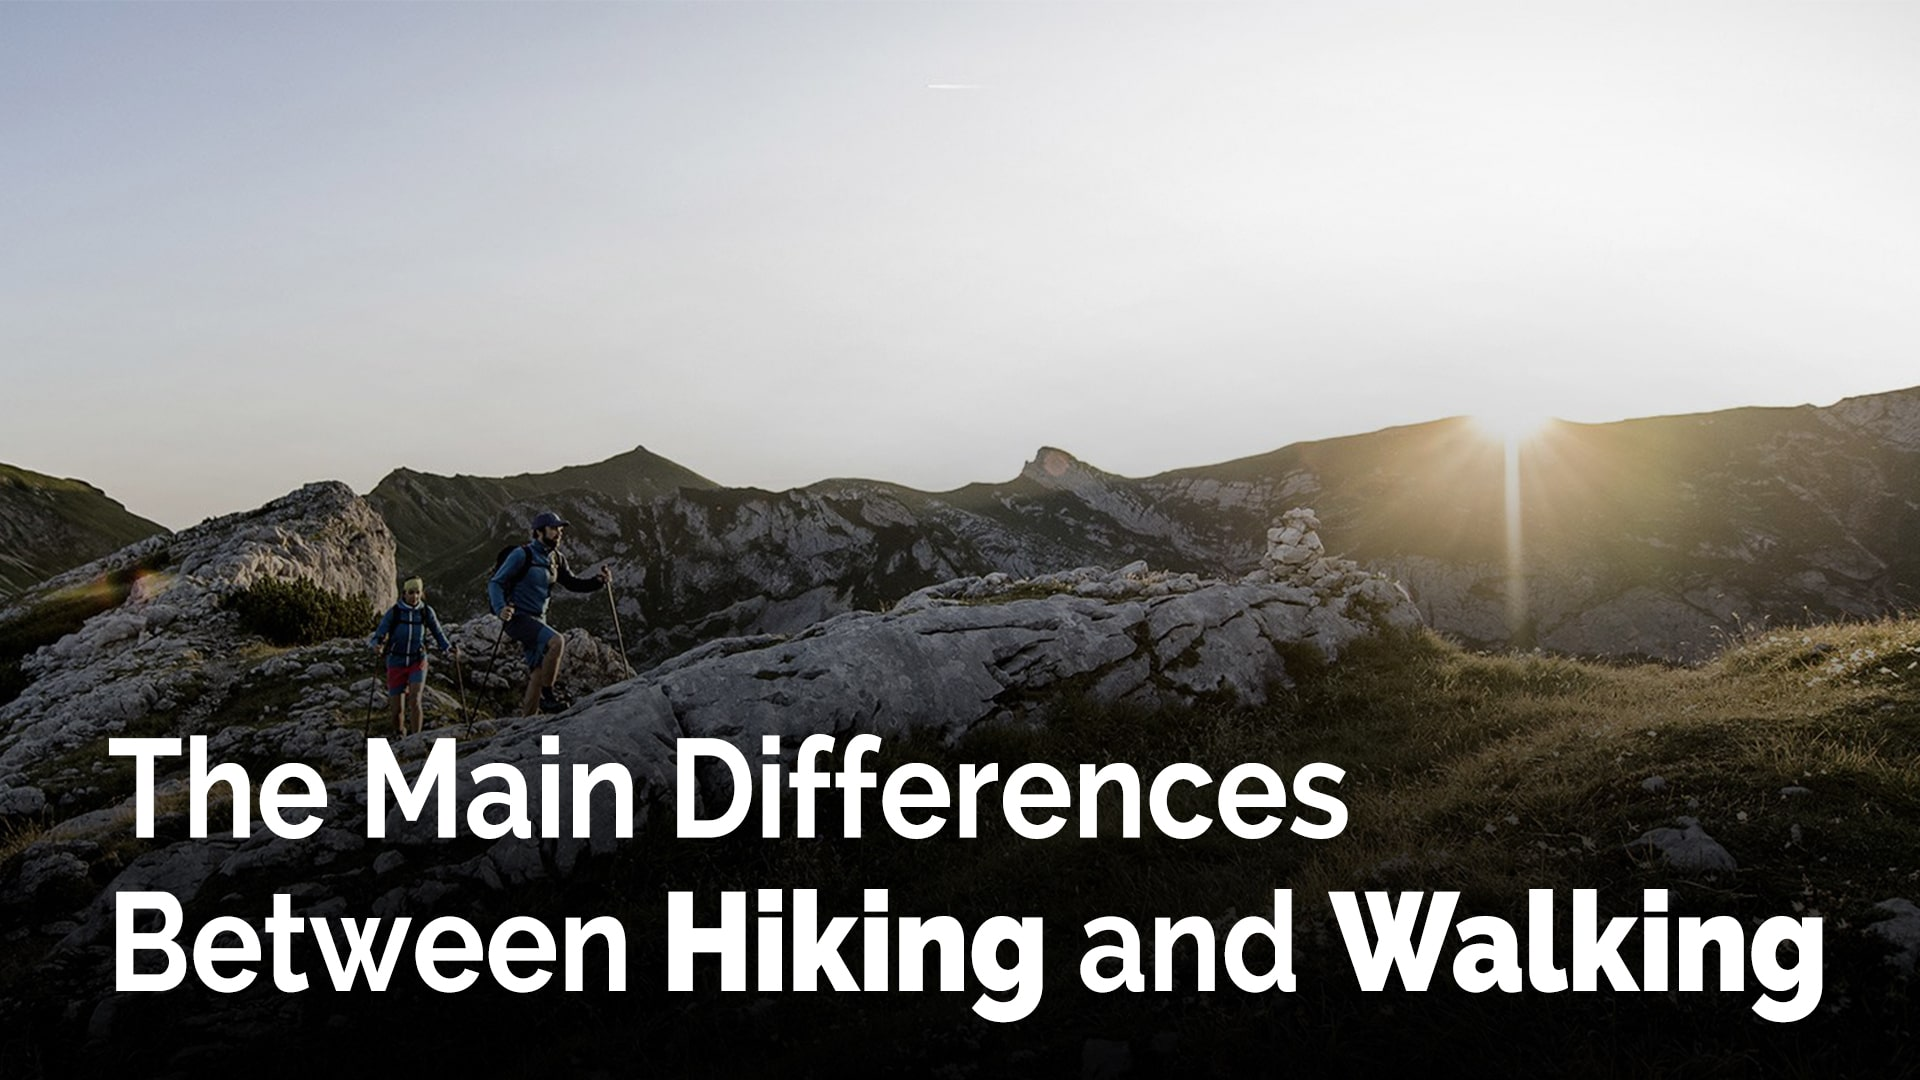 The Main Differences Between Hiking and Walking